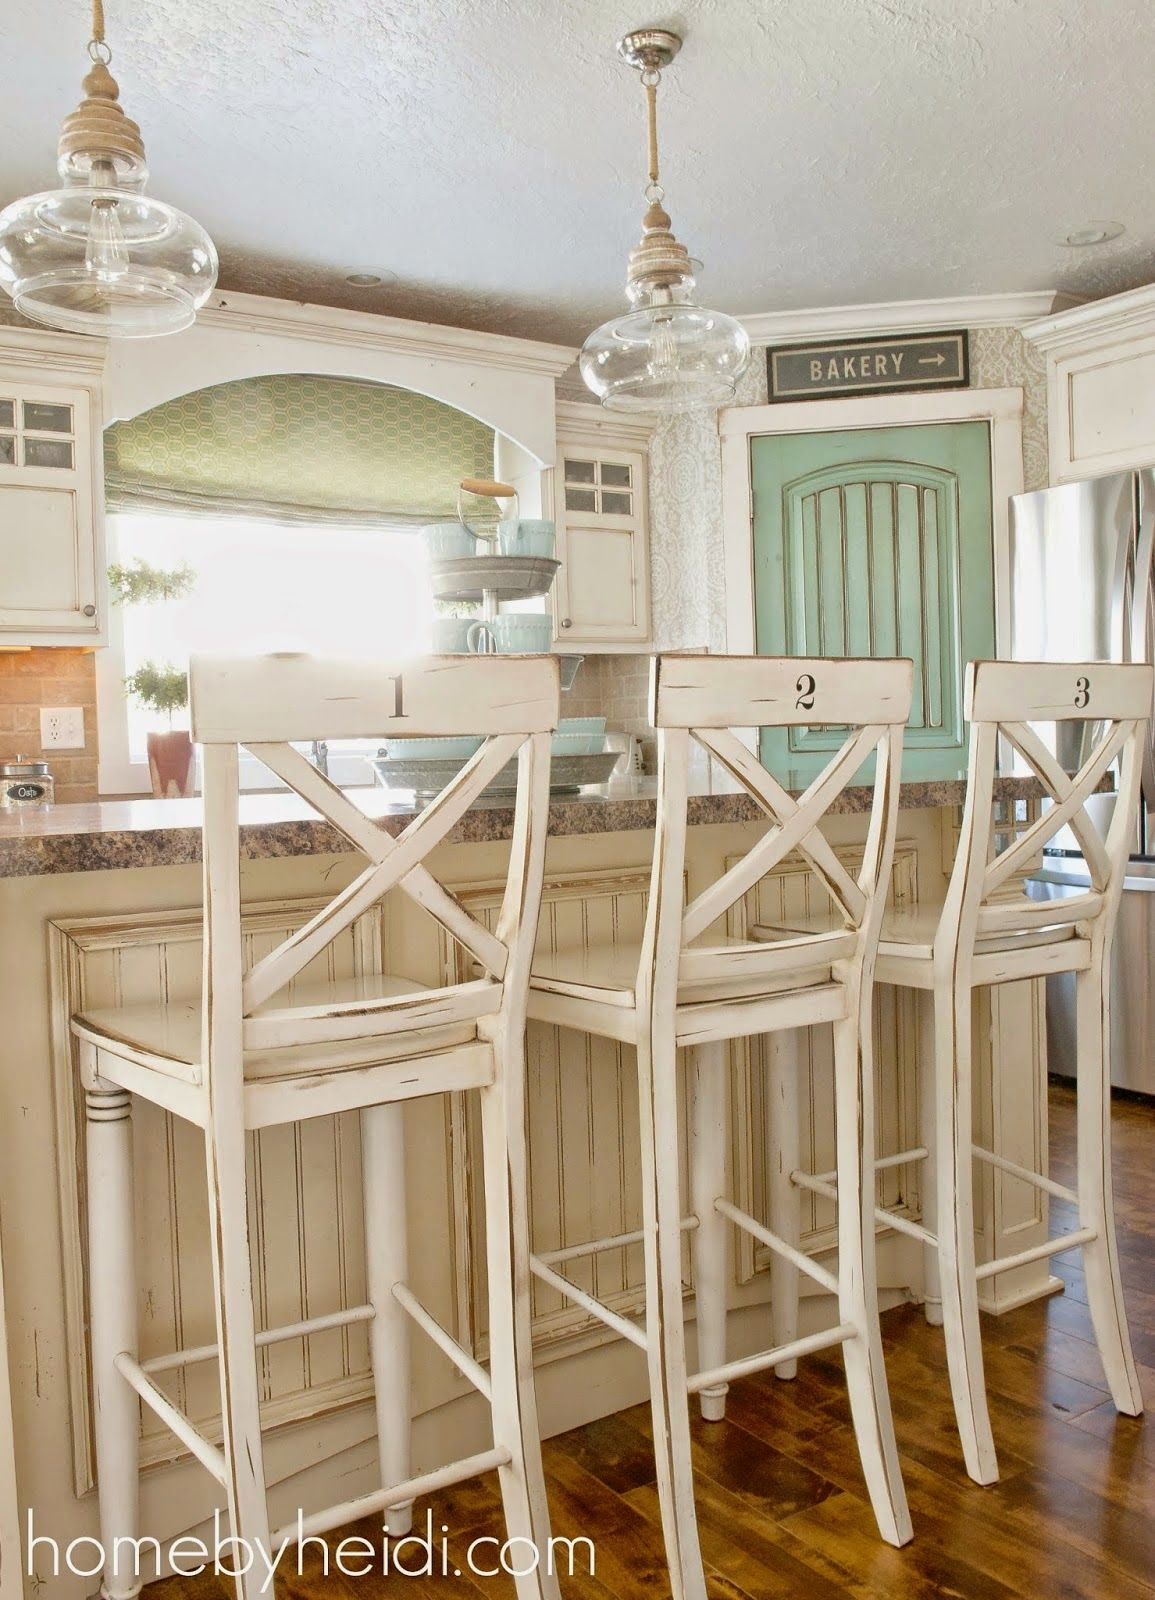 Updated Kitchen Homebyheidi Com Trendy Farmhouse Kitchen